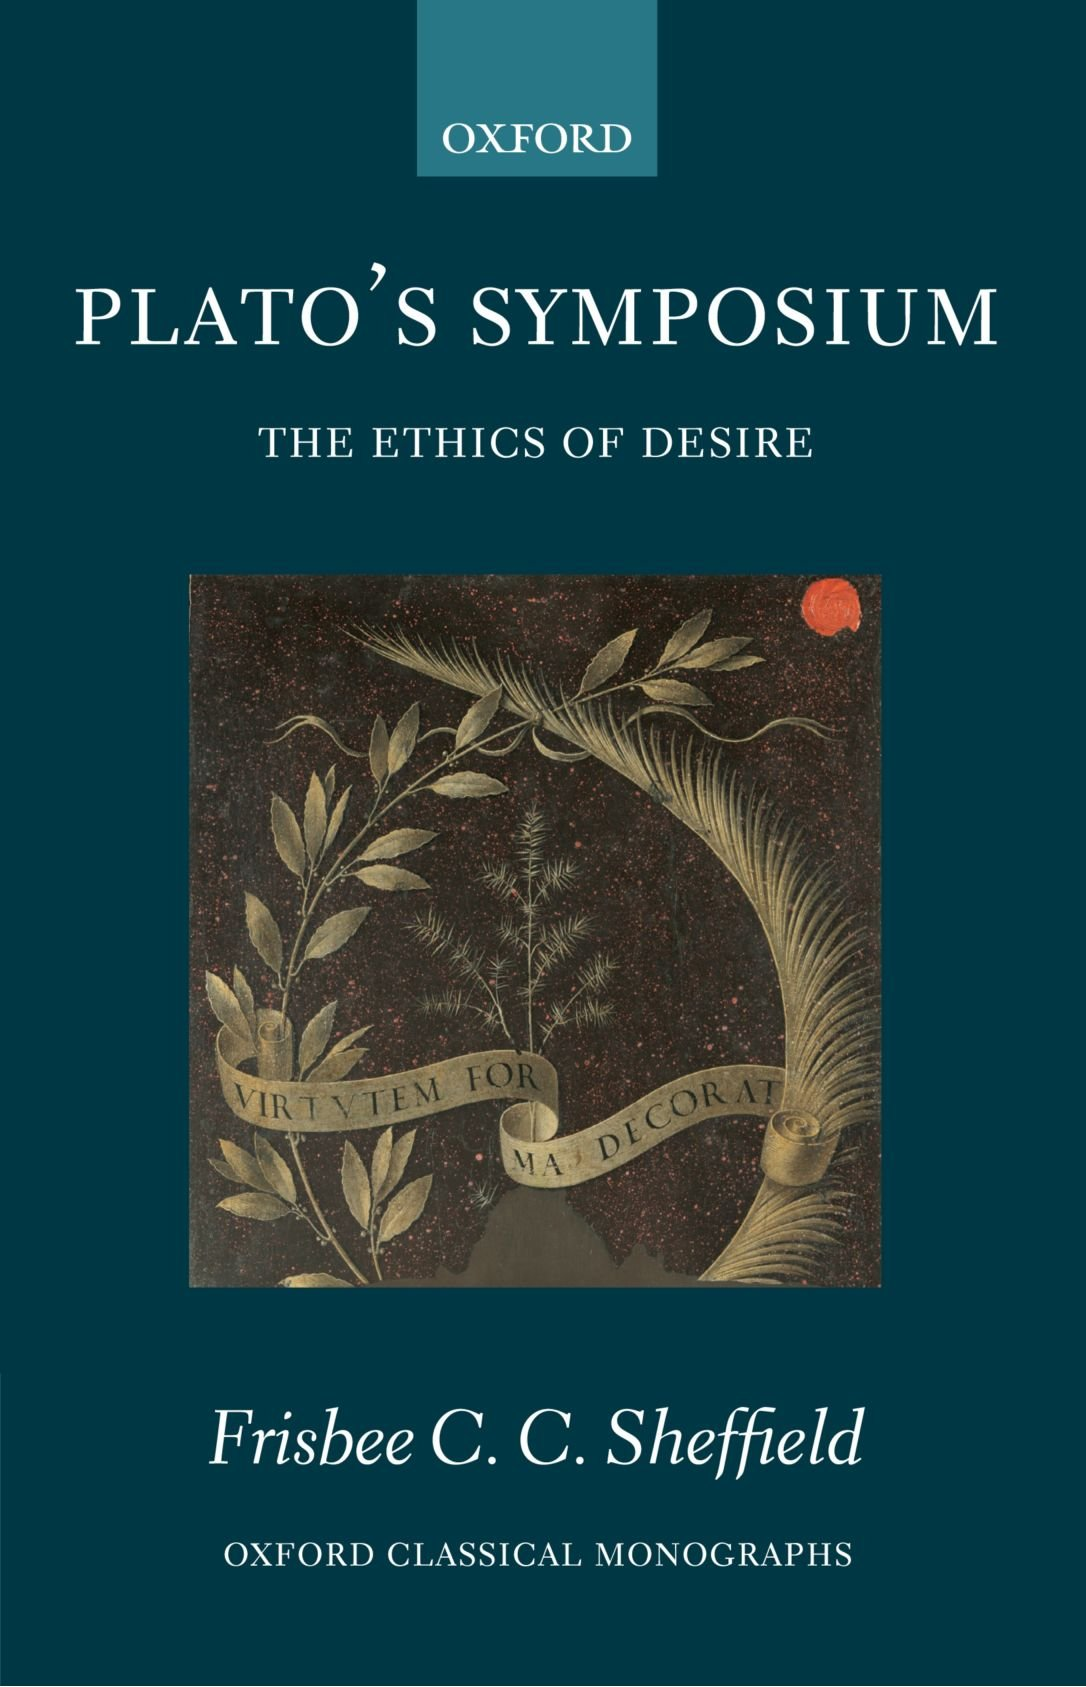 Symposium                               By Plato, 80 pages. Partygoers take turns giving speeches on the nature of love in this philosophical work that originated the concept of the Platonic relationship.